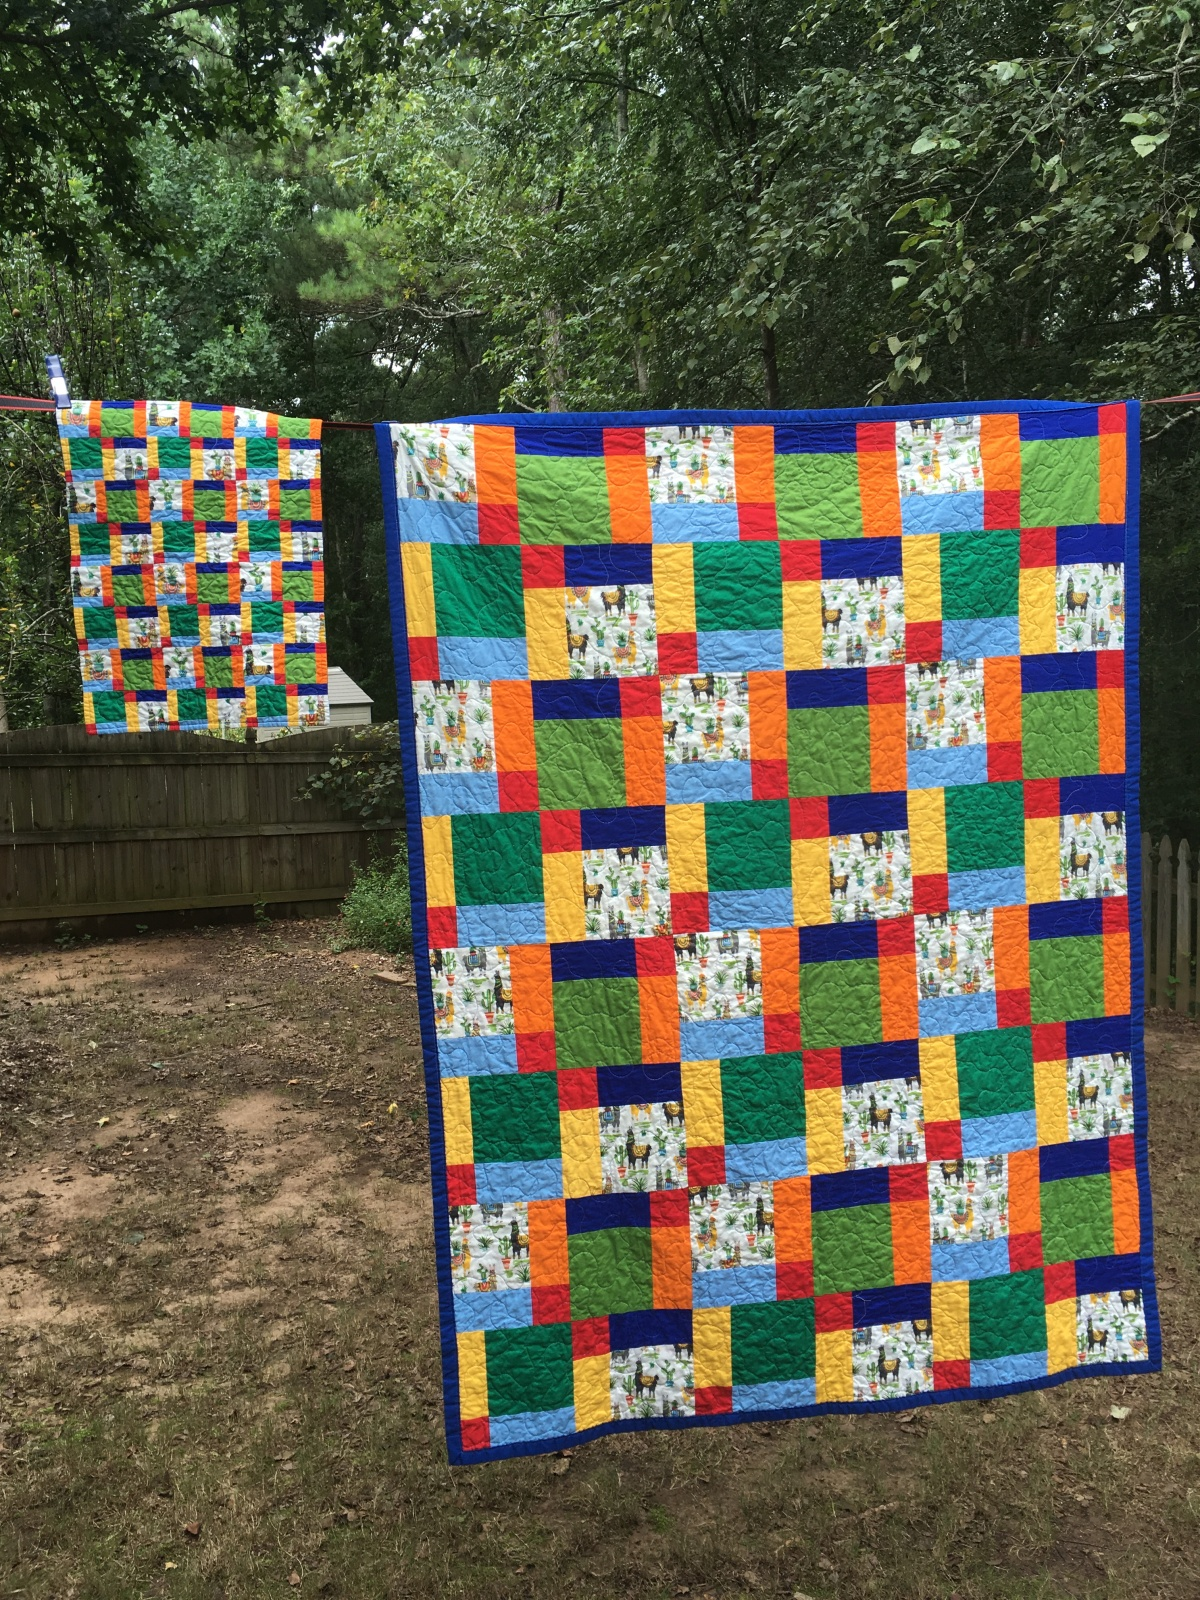 Online Market Quilt Showcase 2 – the child's quilt sets with matching teddy bear/doll quilt